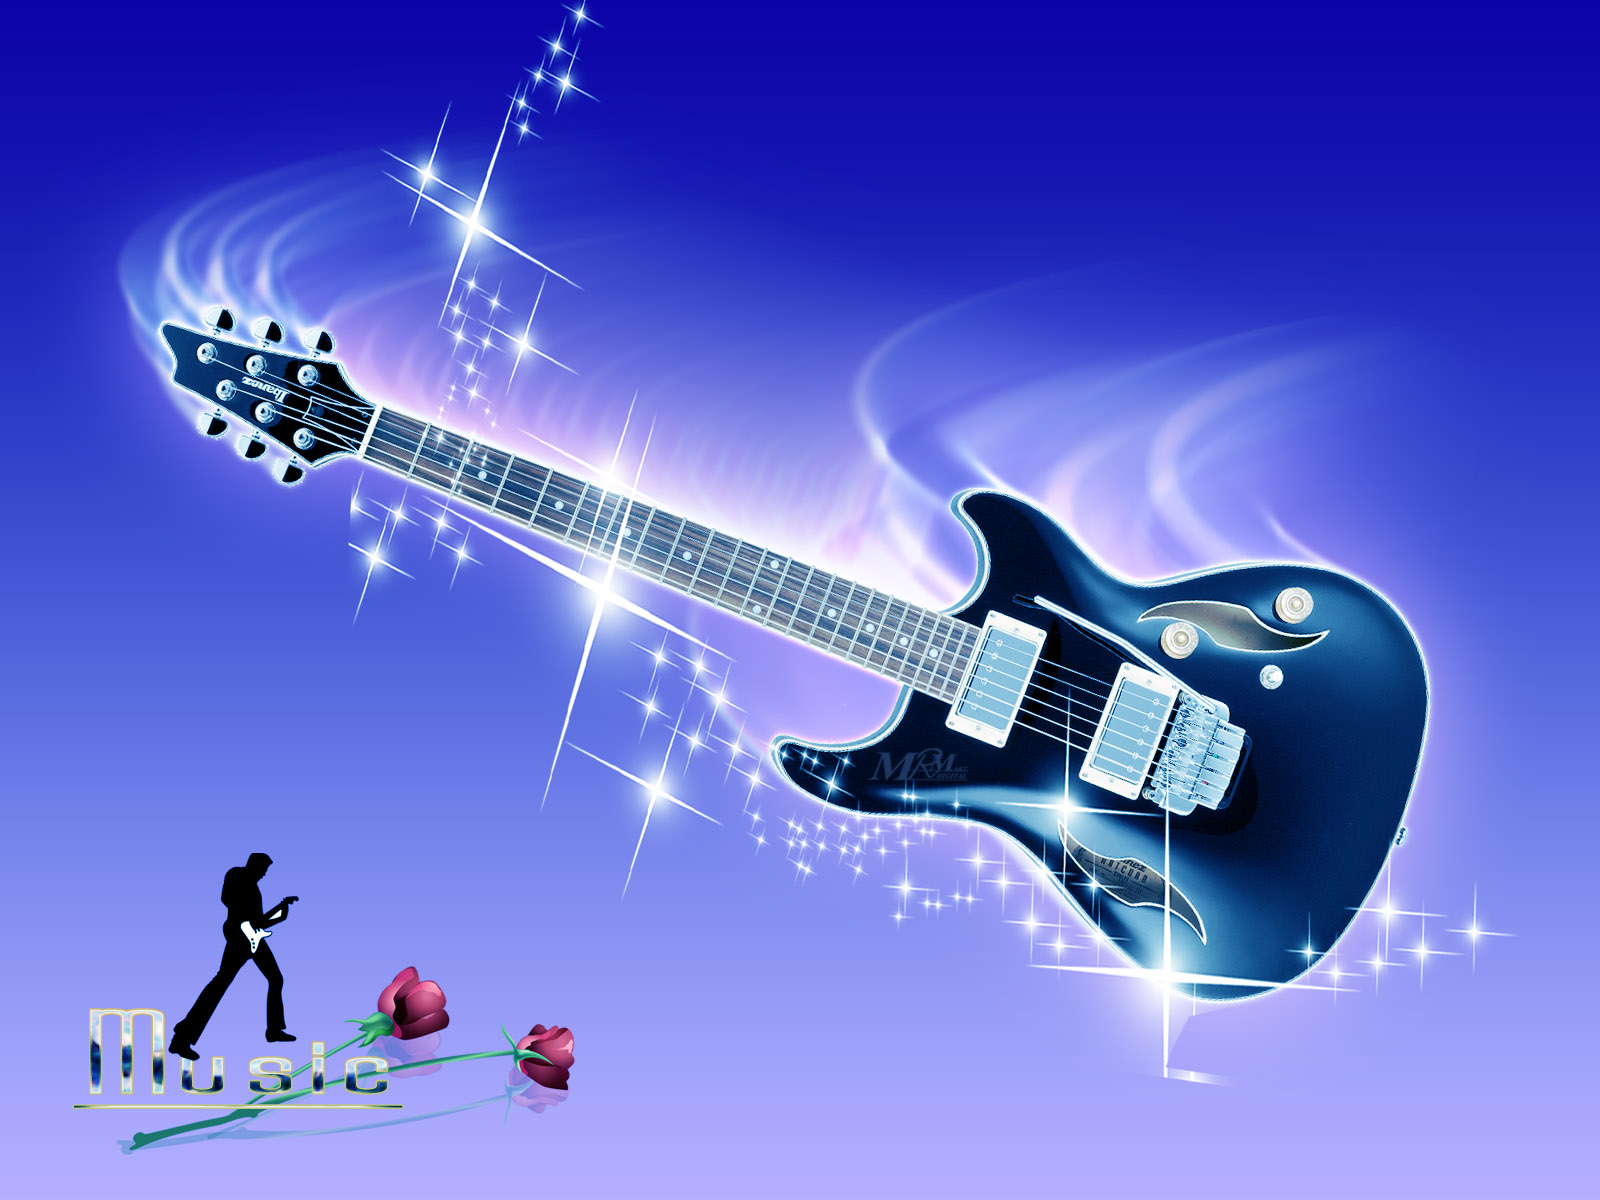 Music Backgrounds Music Desktop Background Free Premium: Free Music Wallpapers And Screensavers